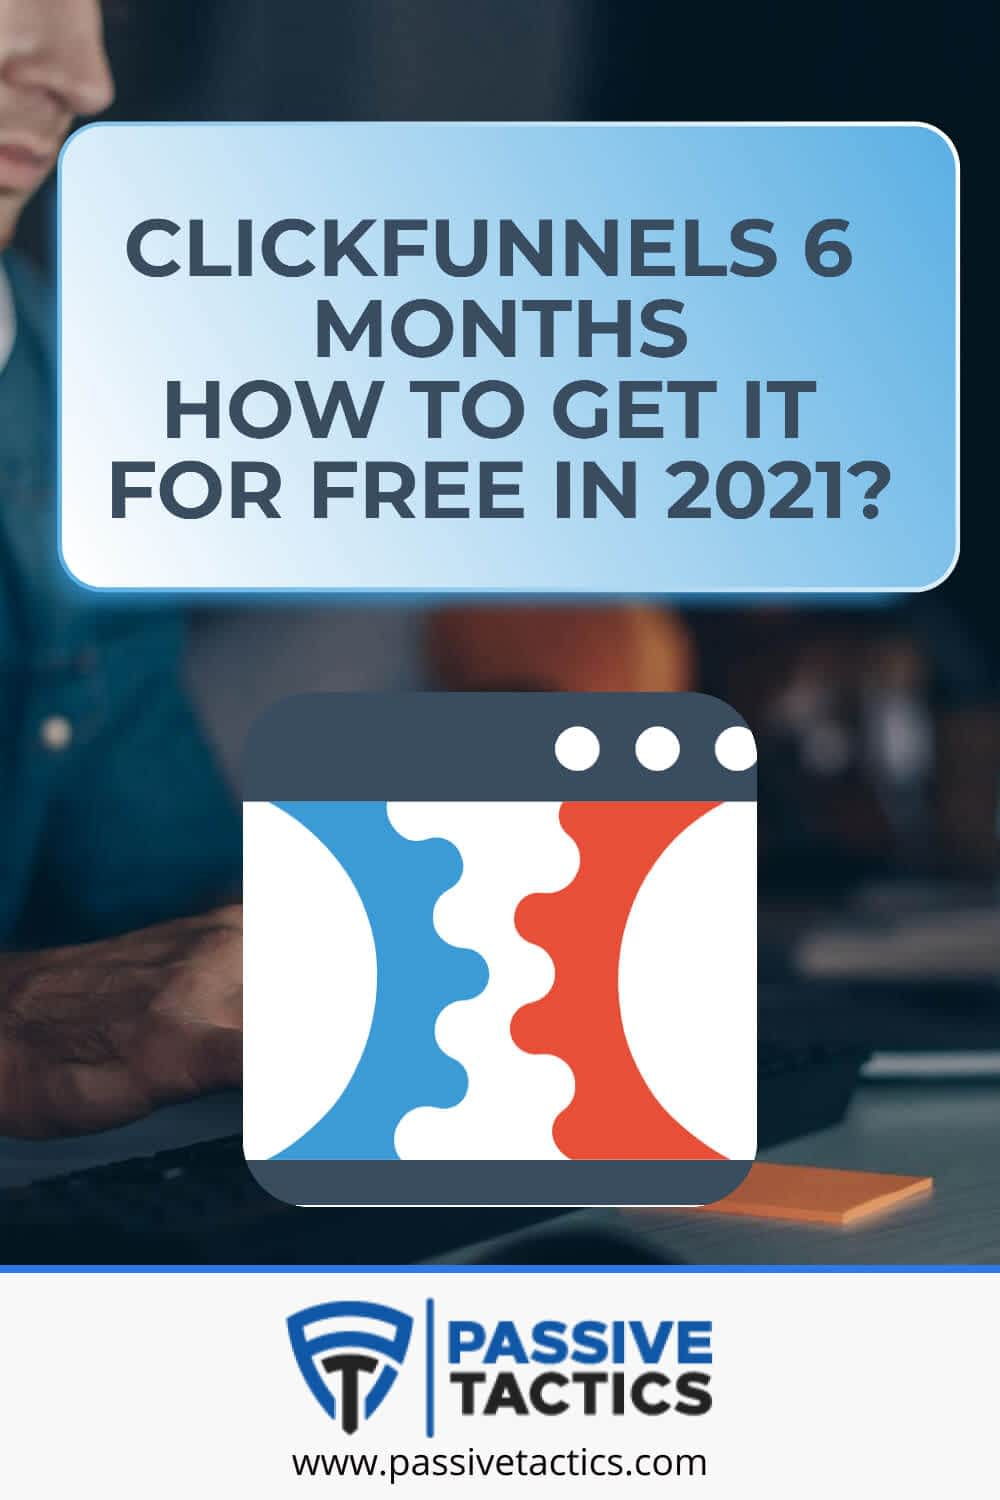 ClickFunnels 6 Months: How To Get It For Free In 2021?